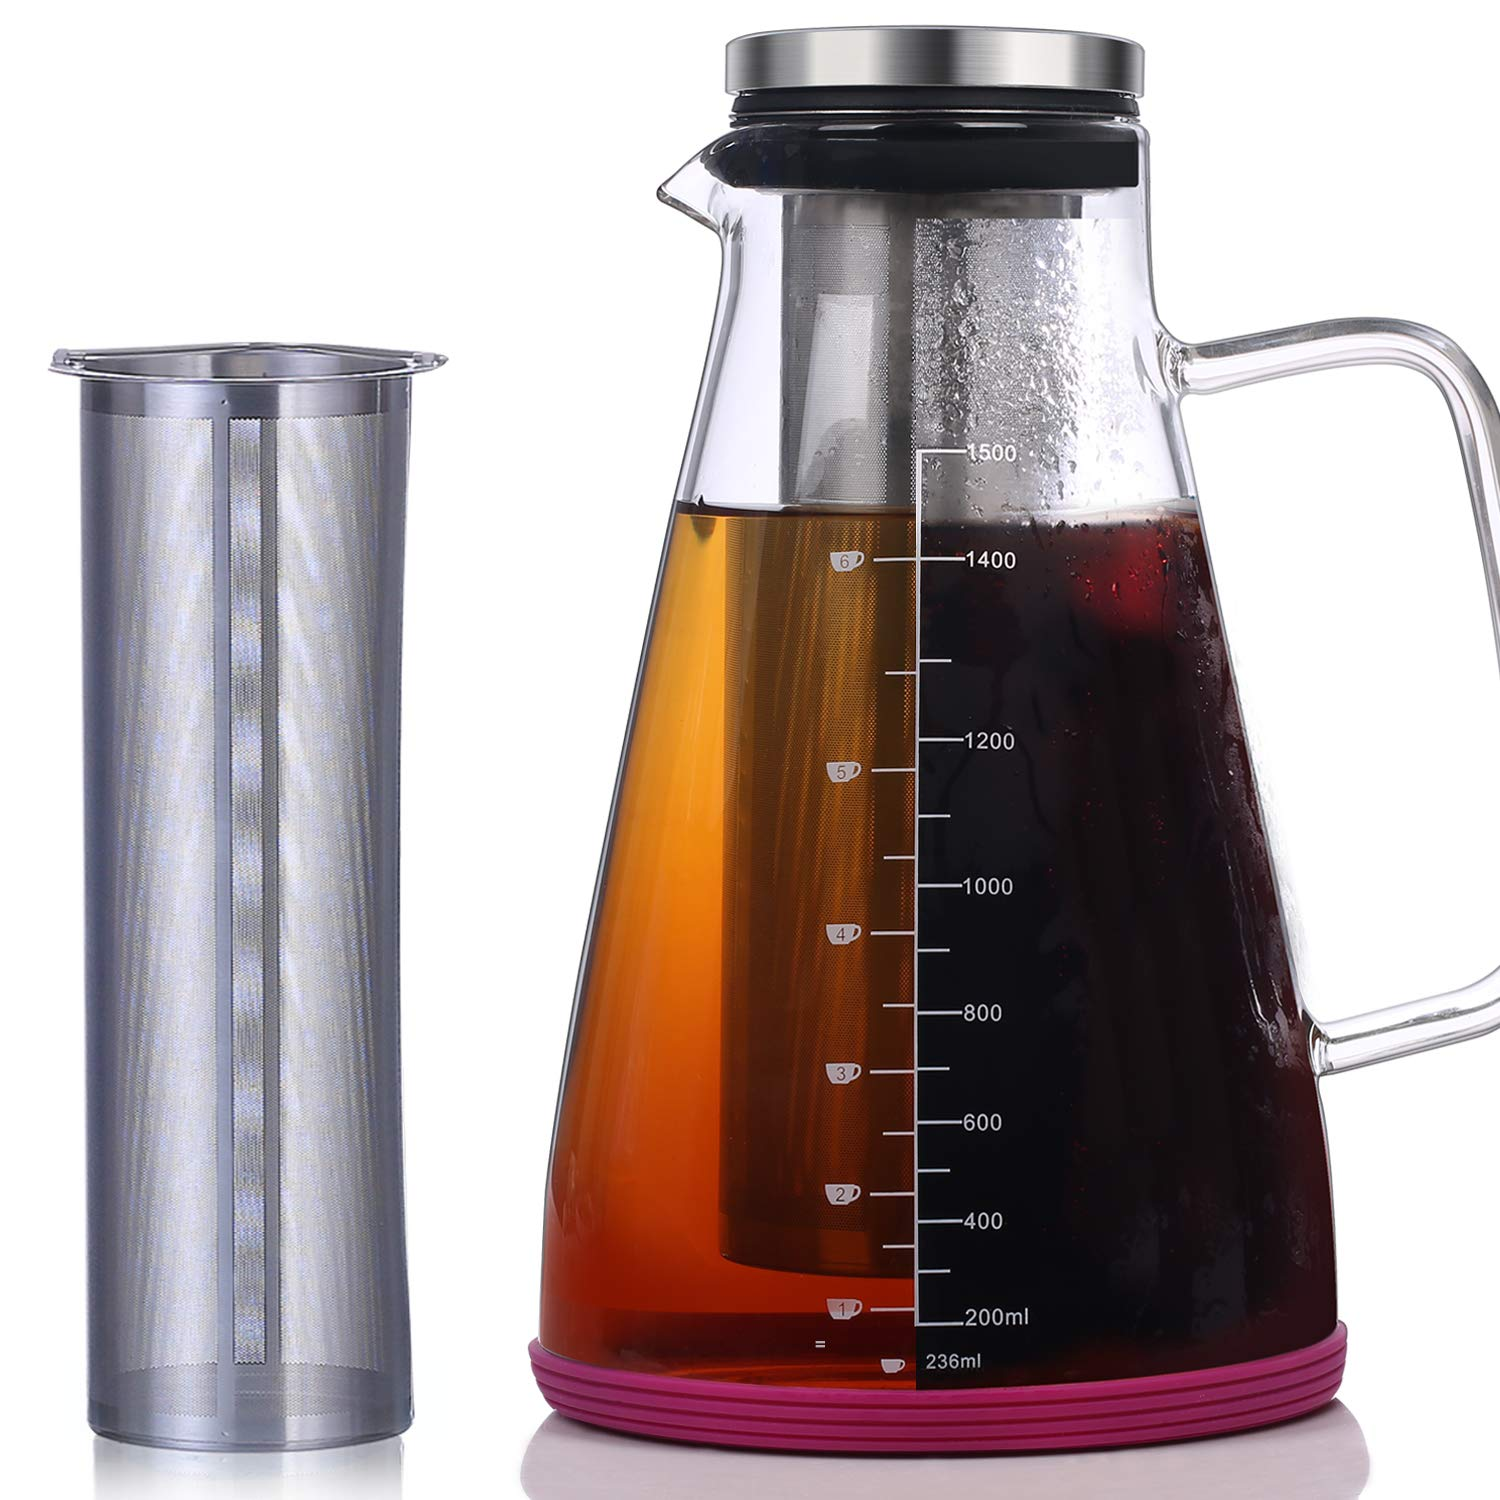 Large Cold Brew Iced Coffee & Tea Maker - 50 Oz/1.5L - Protective Non-slip Silicon Base - Glass Carafe and Water Pitcher with Removable Filter - Coffee and Tea Brew Recipe Includ by Tartek